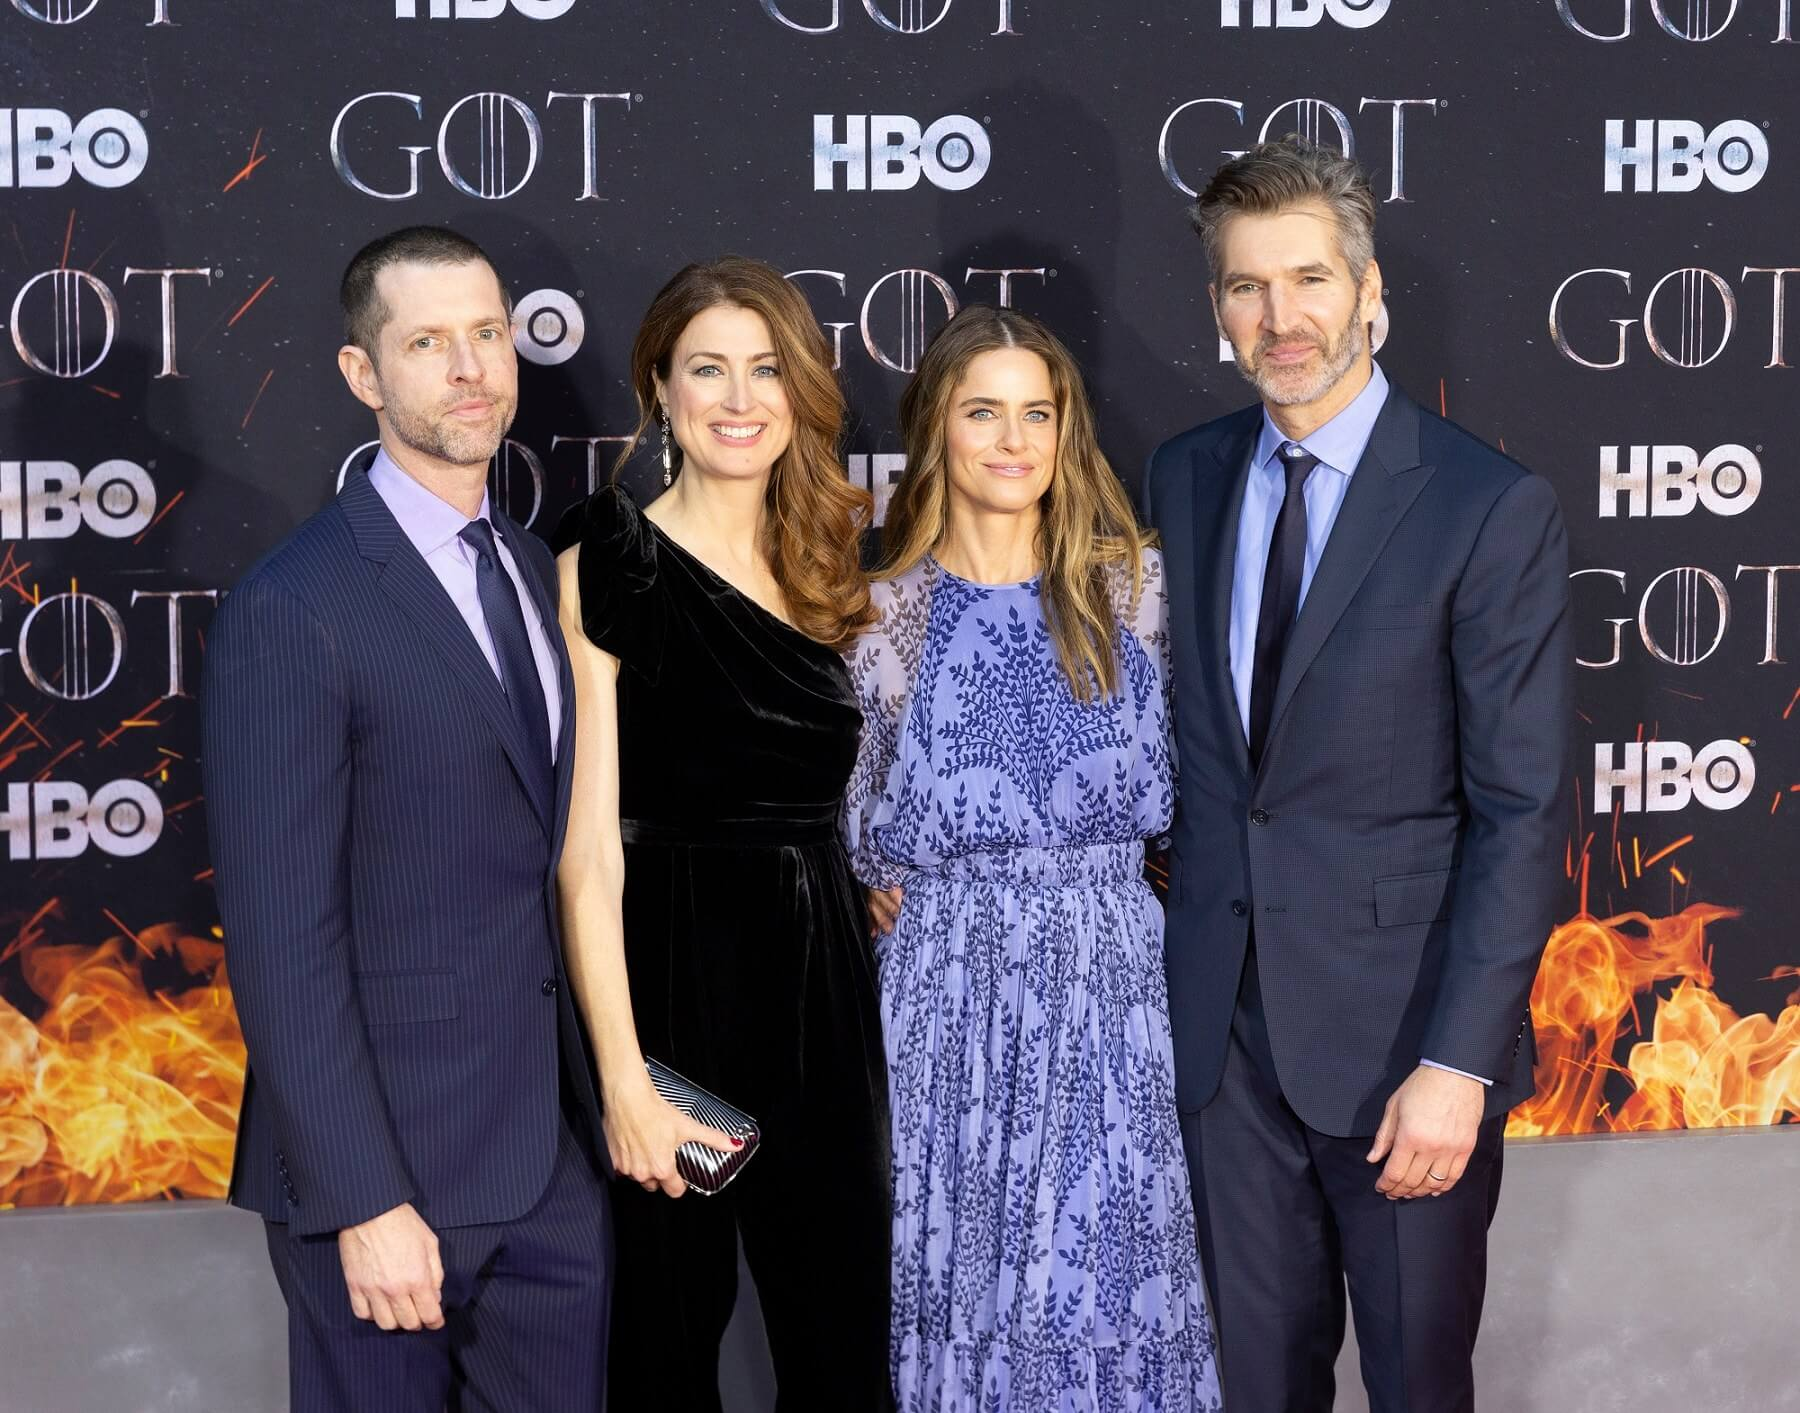 Game of Thrones showrunners David Benioff and Dan Weiss sign $200 million deal with Netflix